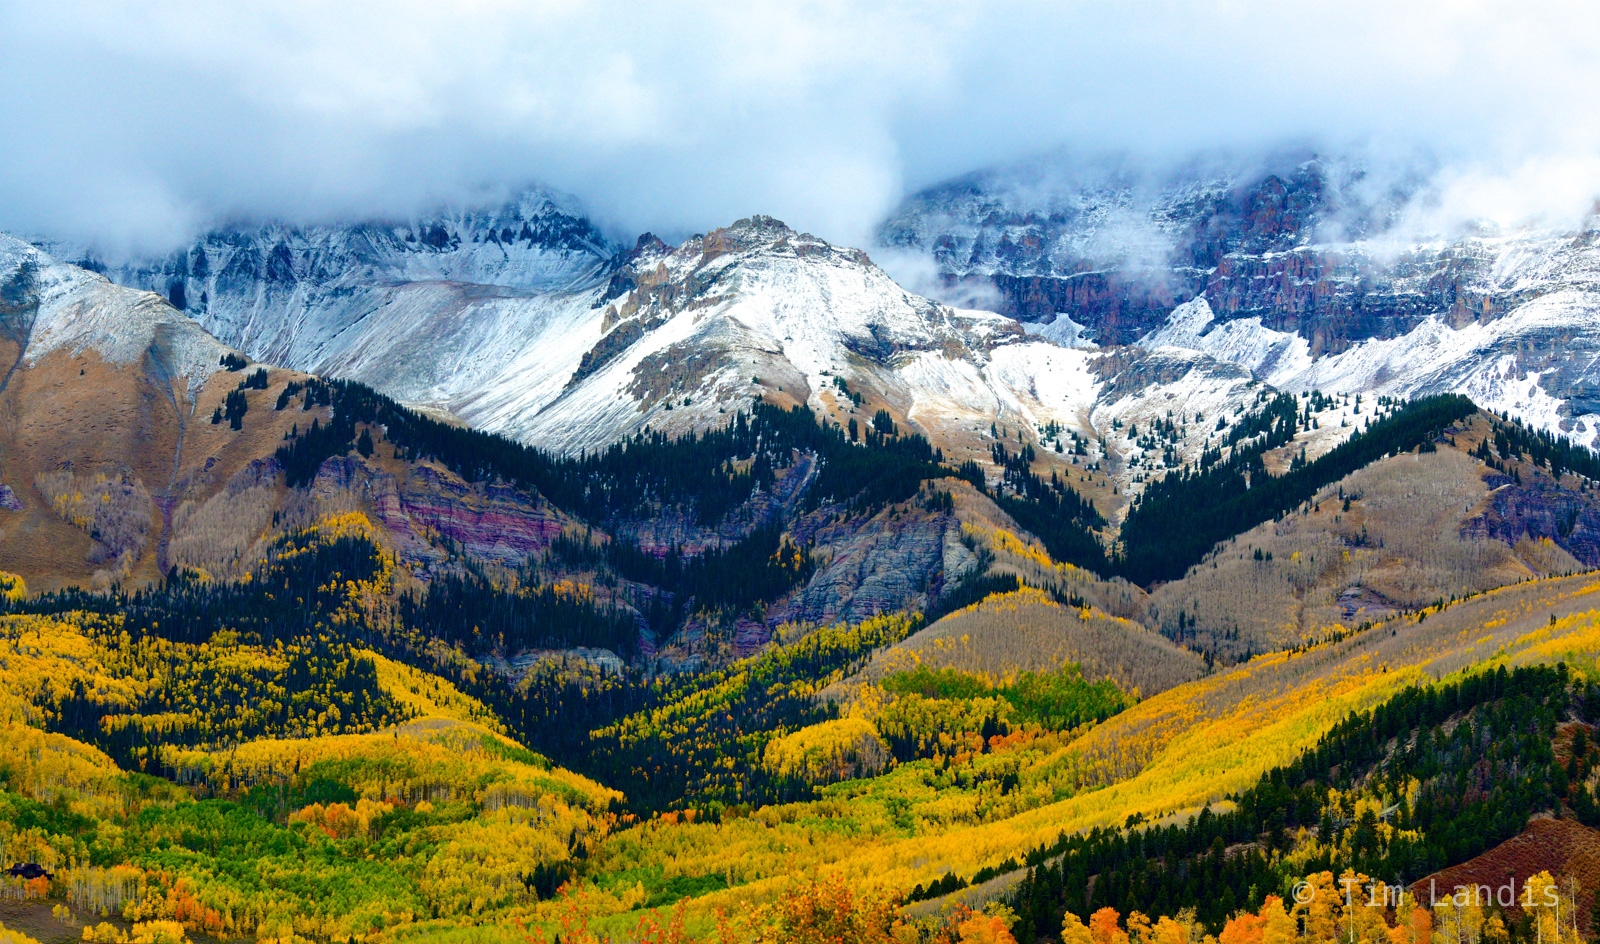 Mountains with snow, aspens with gorgeous leaves below., photo